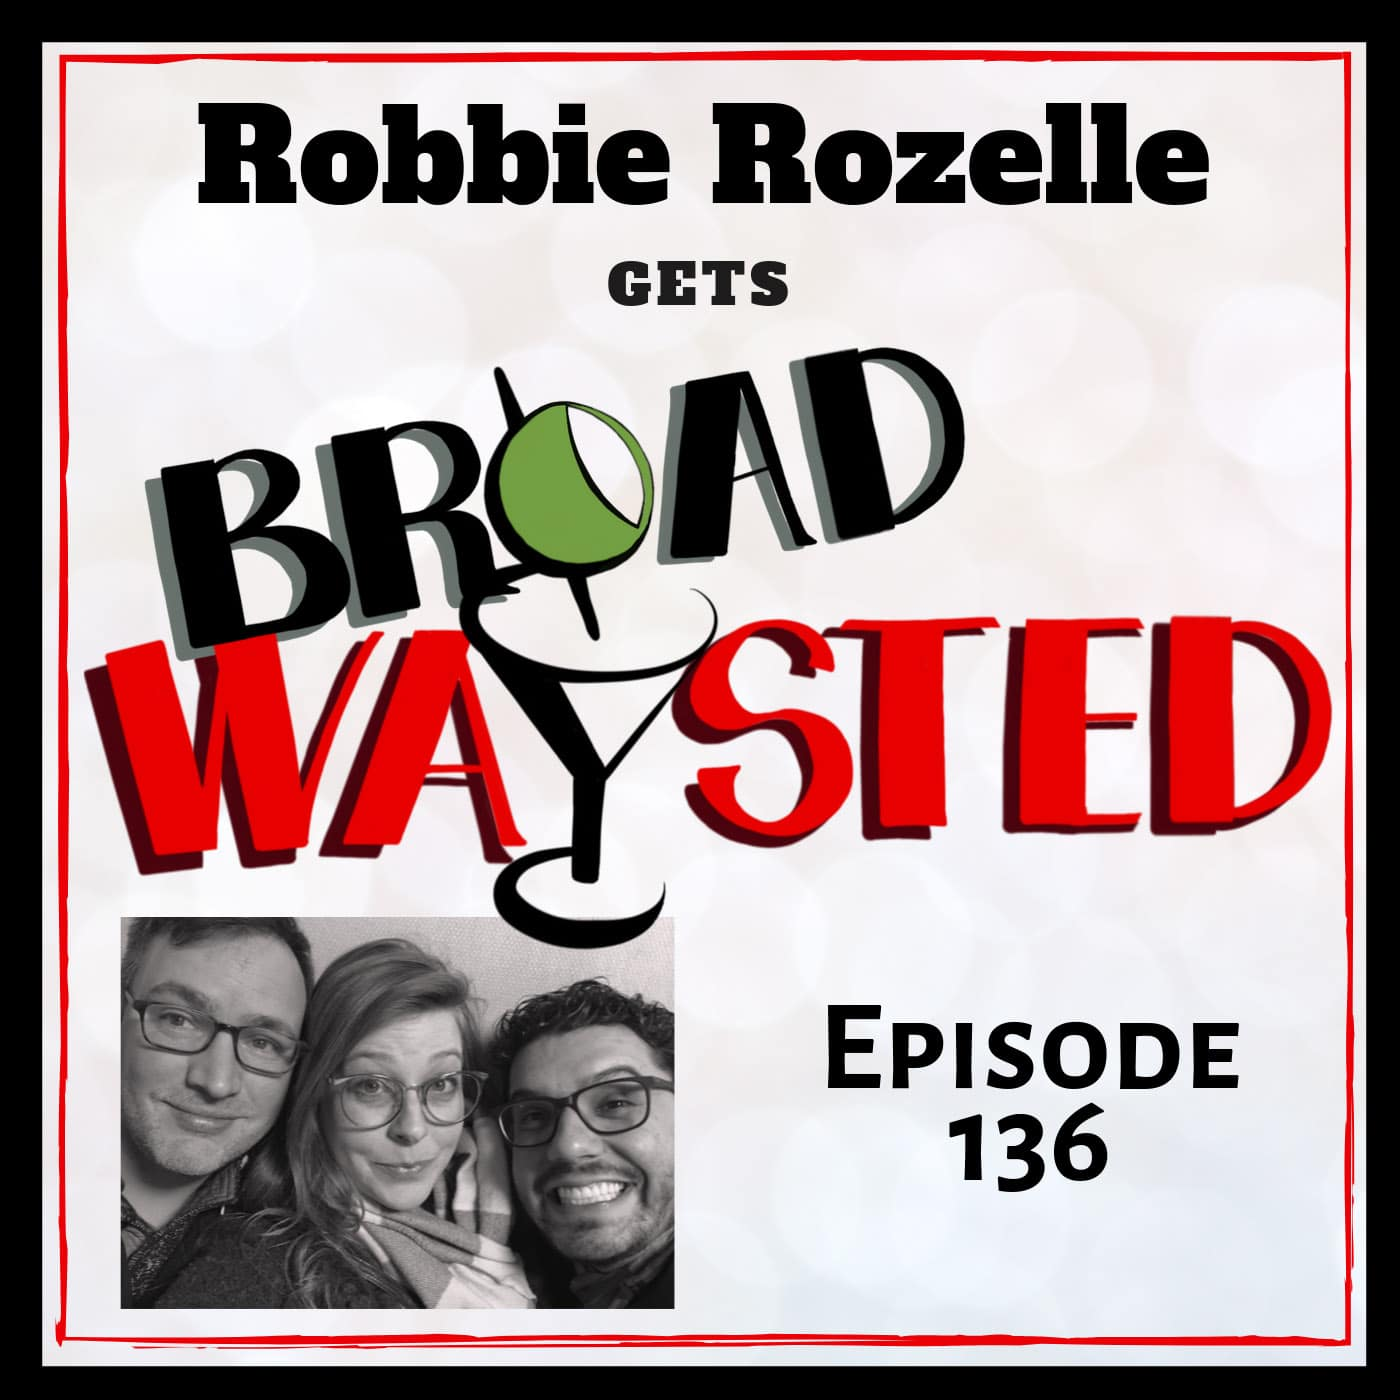 Broadwaysted Ep 136 Robbie Rozelle